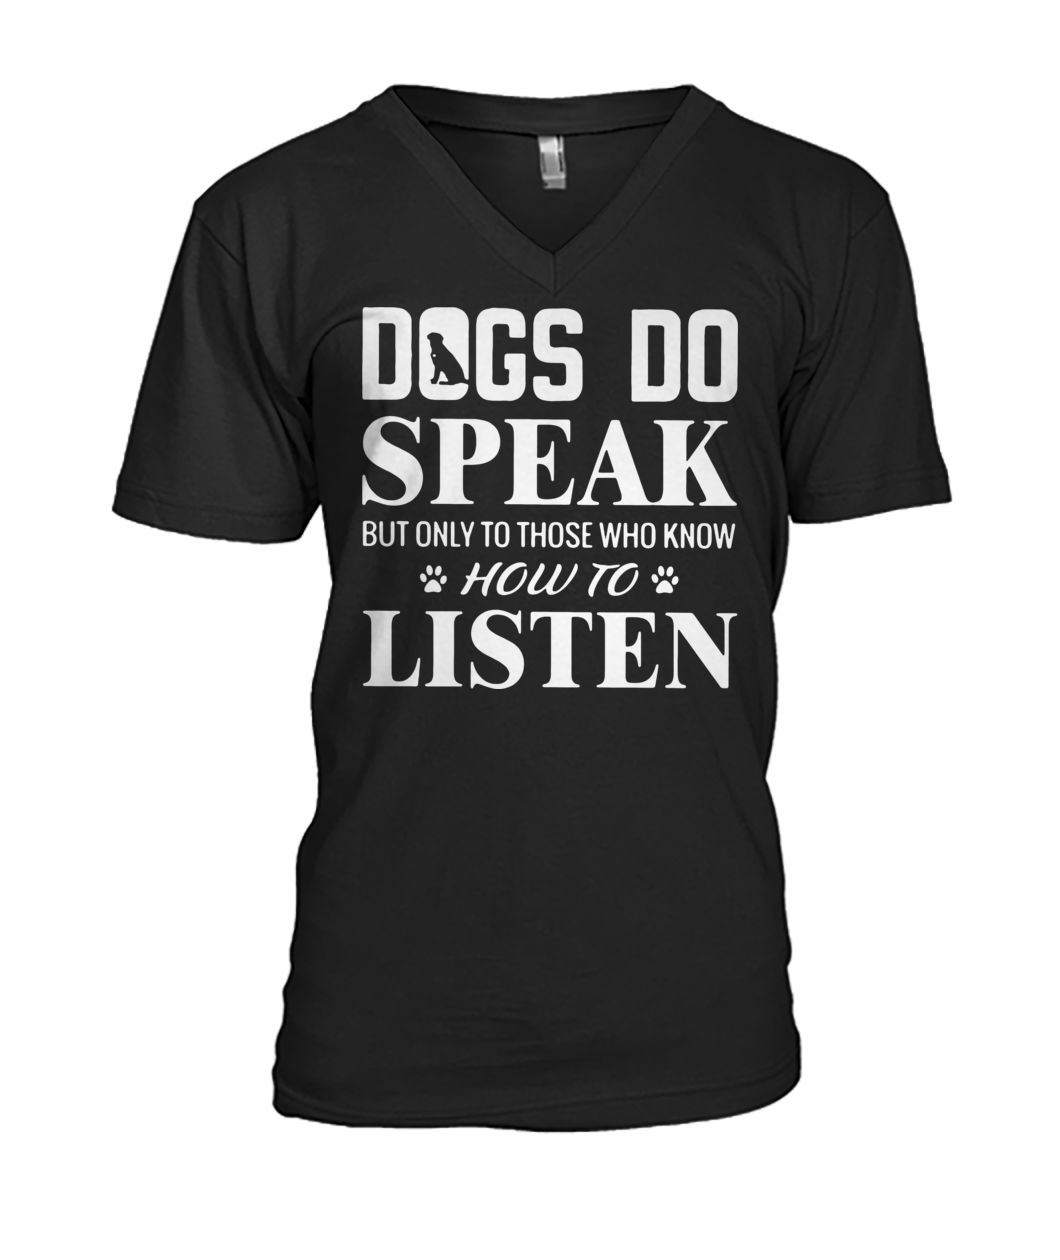 Dogs do speak but only to those who know how to listen mens v-neck